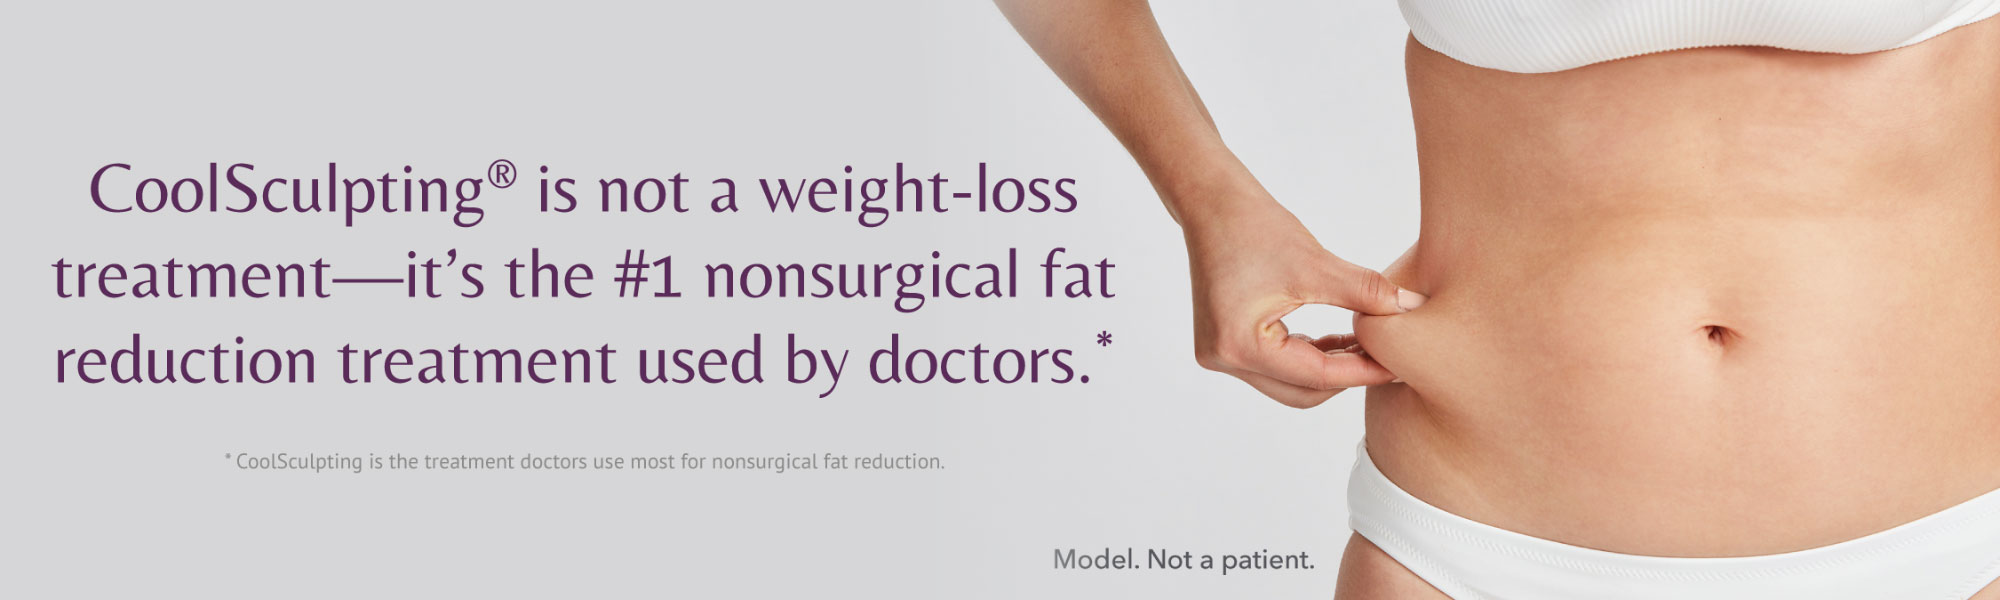 CoolSculpting® is not a weight-loss treatment—it's the #1 nonsurgical fat reduction treatment used by doctors.